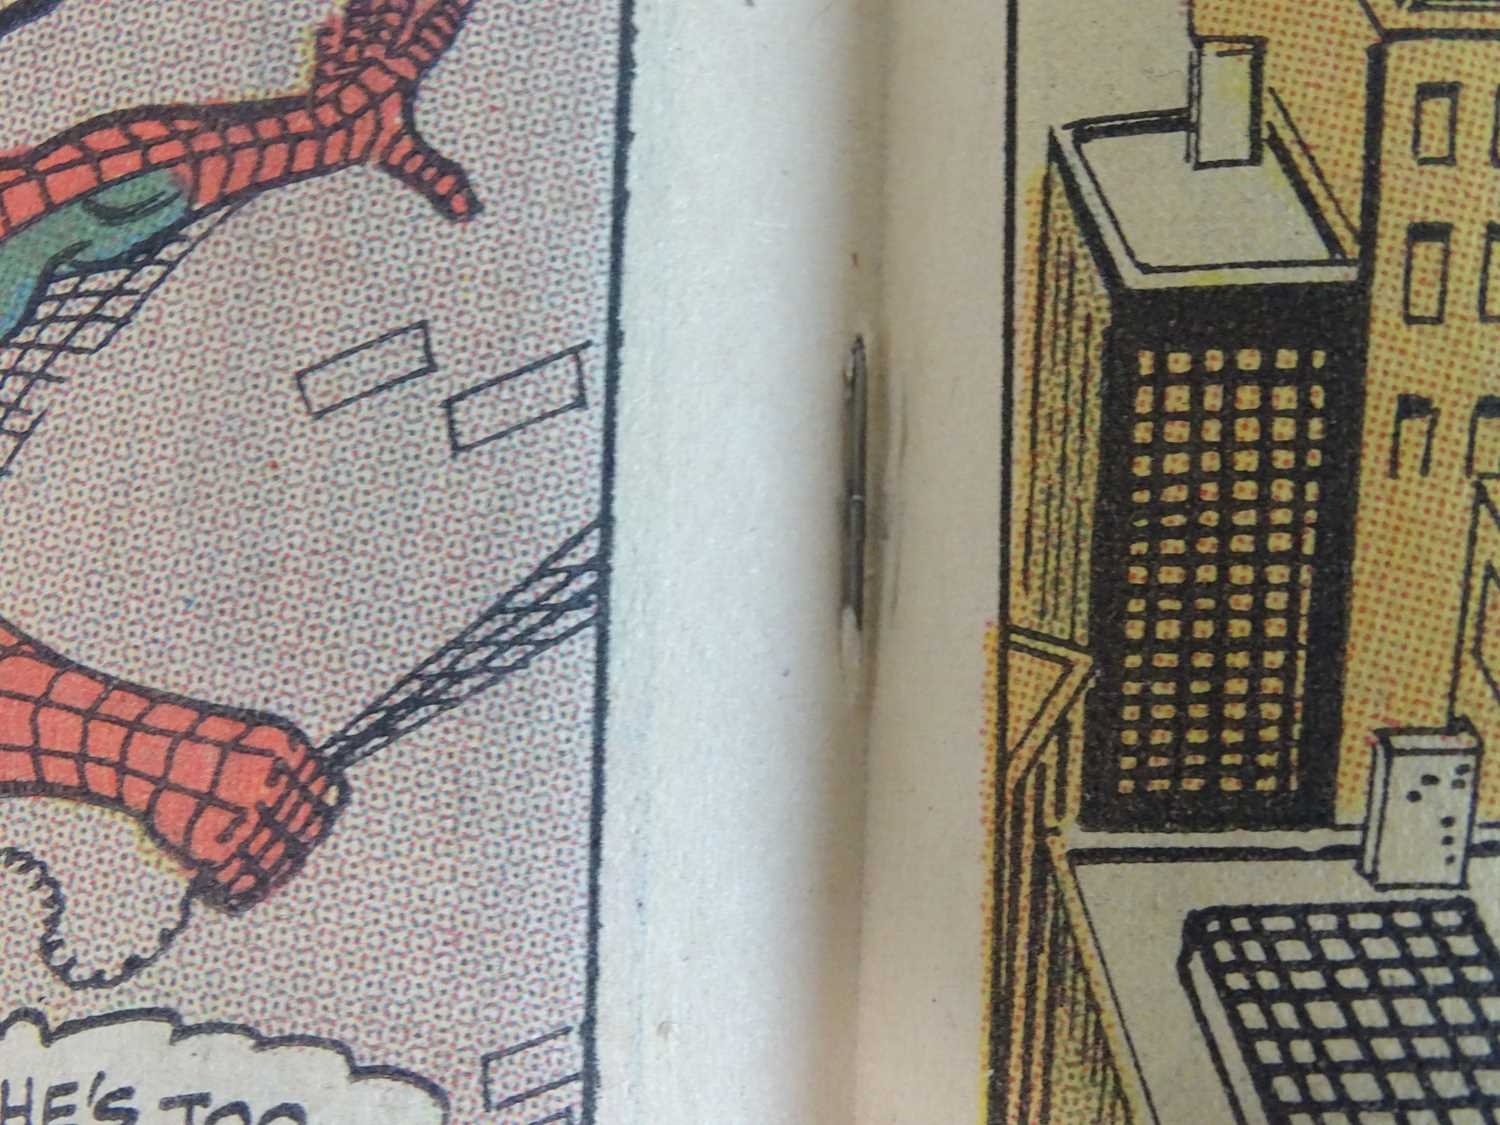 AMAZING SPIDER-MAN #71 - (1969 - MARVEL) - Quicksilver, Scarlet Witch, Toad appearances - John - Image 6 of 9